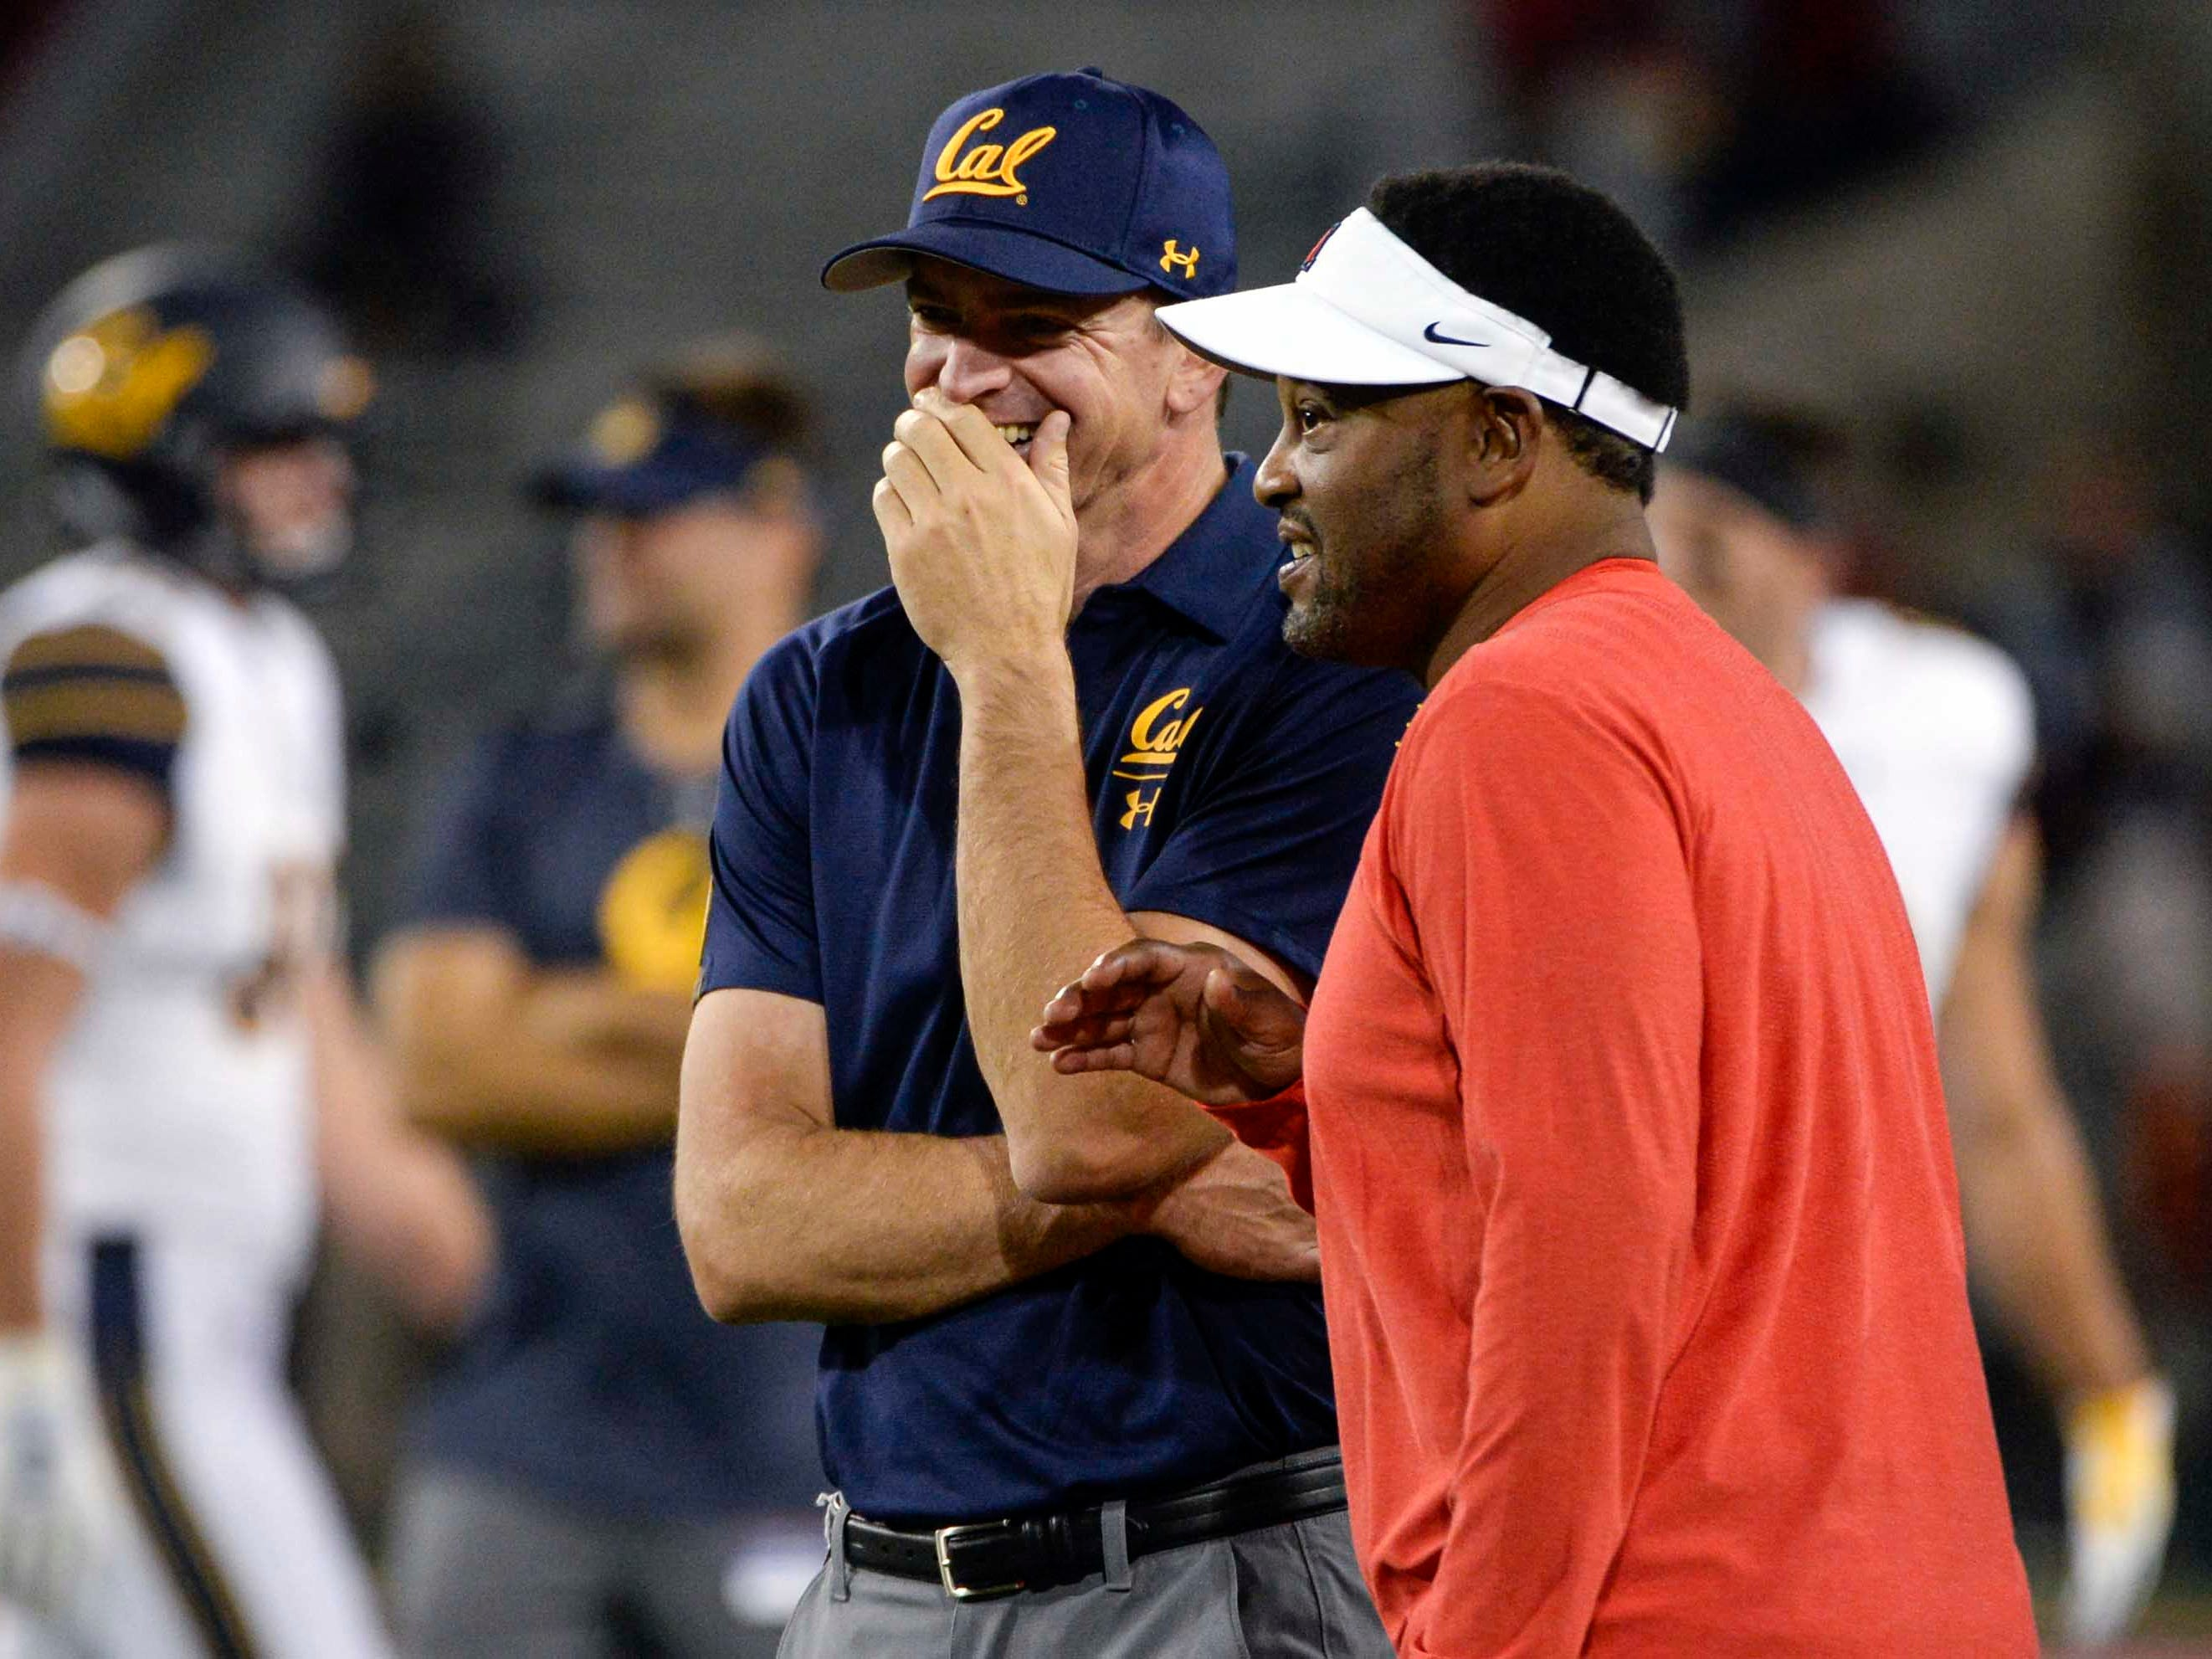 Oct 6, 2018; Tucson, AZ, USA; California Golden Bears head coach Justin Wilcox (left) and Arizona Wildcats head coach Kevin Sumlin talk before the game at Arizona Stadium. Mandatory Credit: Casey Sapio-USA TODAY Sports